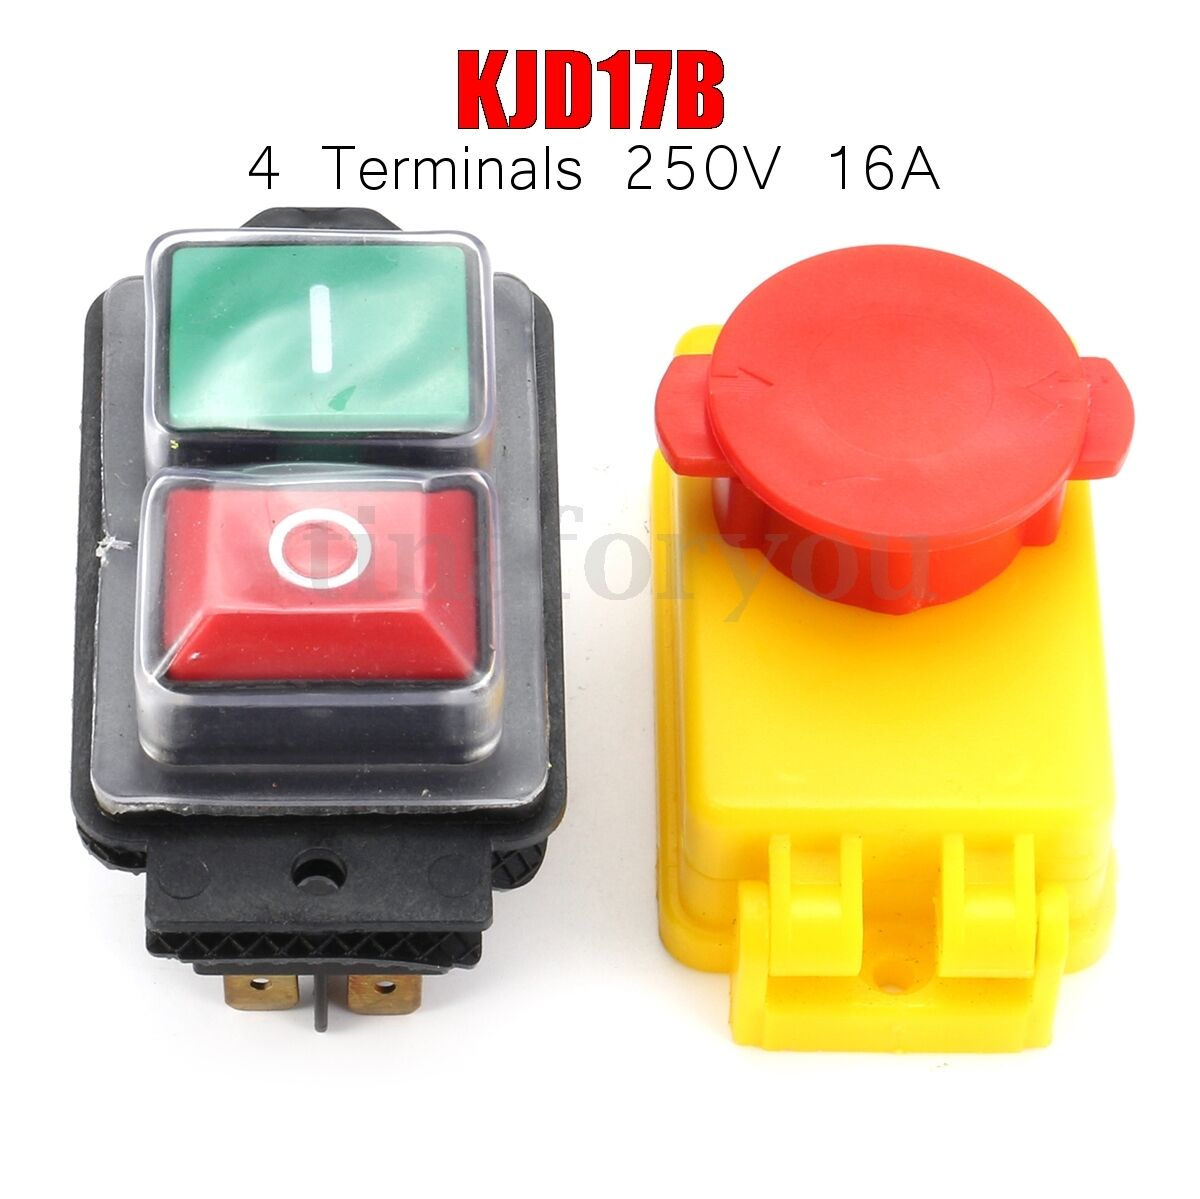 KJD17B 250V 16A IP54 5E4 Machine Emergency Stop Switch No Volt Release Switch